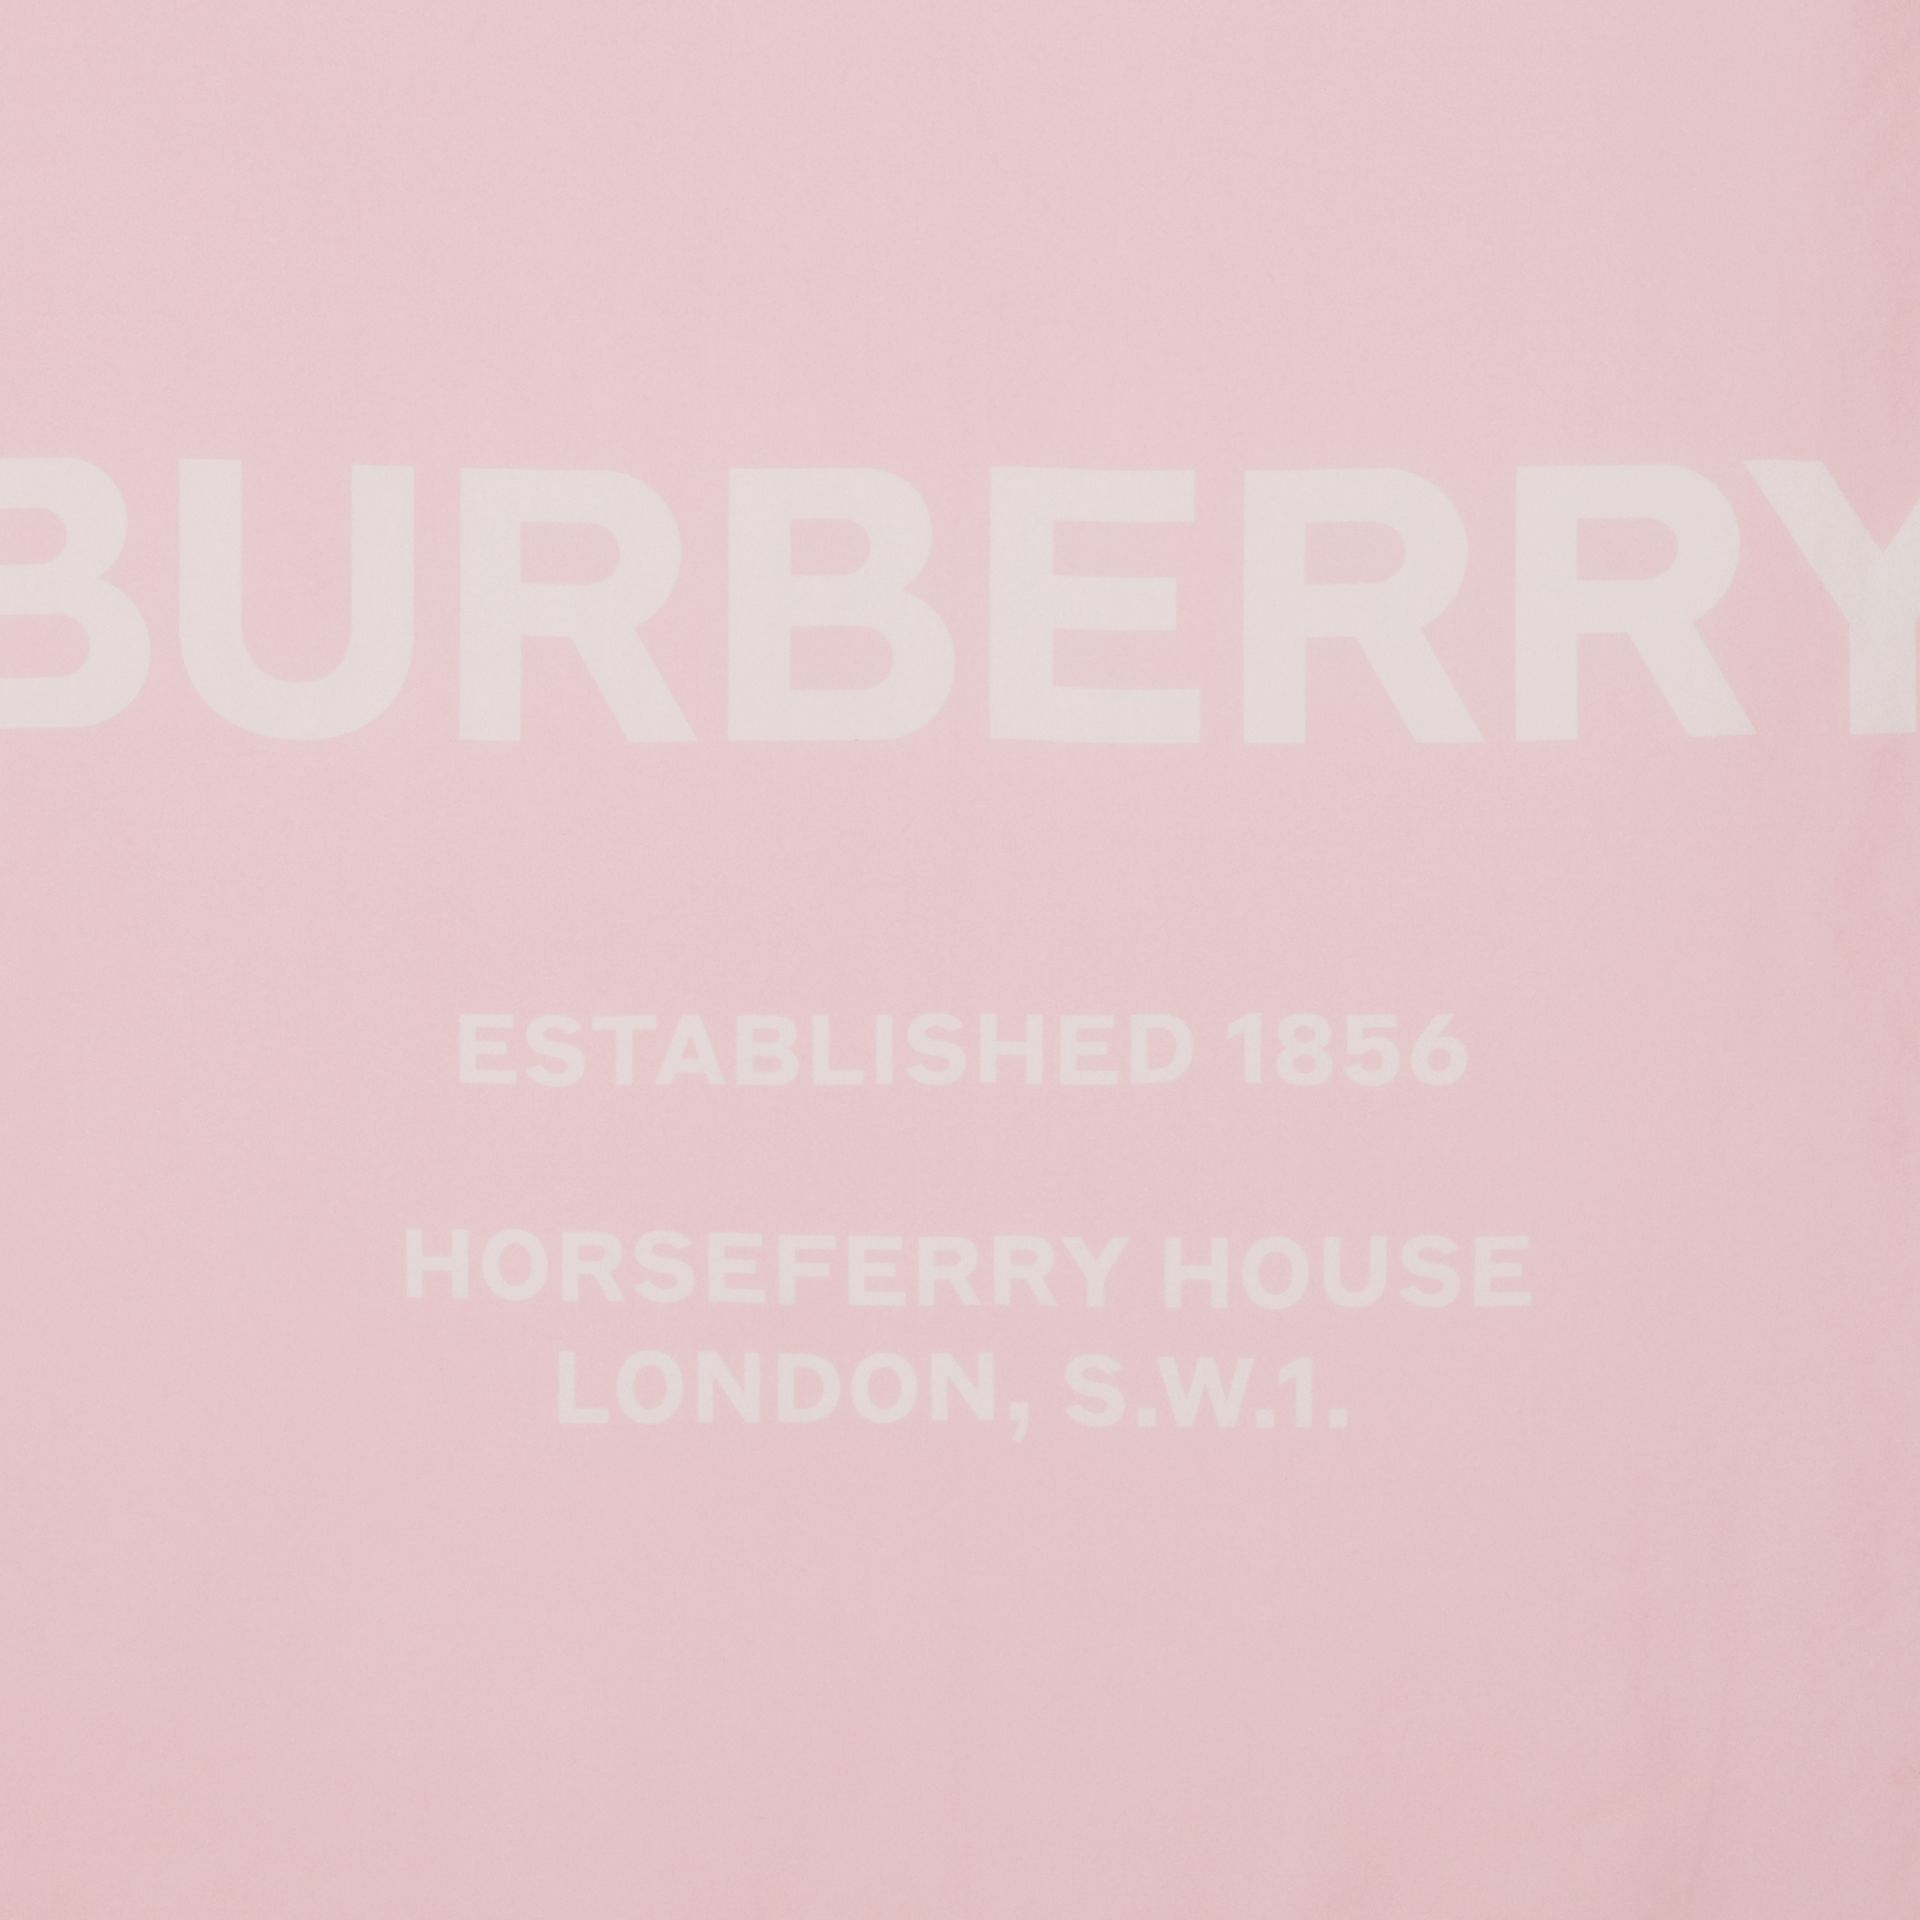 Horseferry Print Silk Square Scarf in Pink | Burberry Singapore - gallery image 1